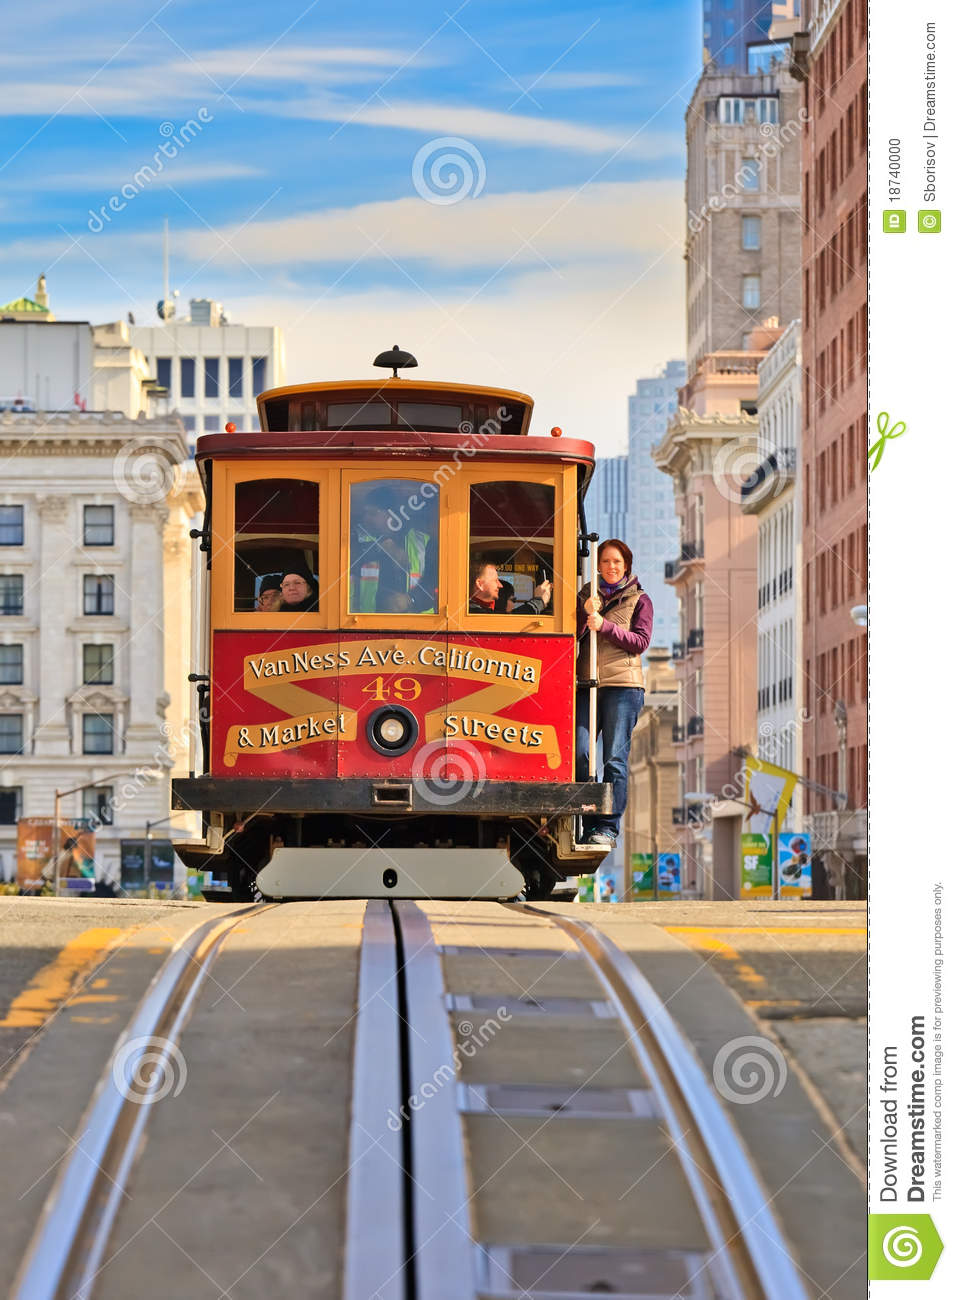 Old Fashioned Trolley Clipart